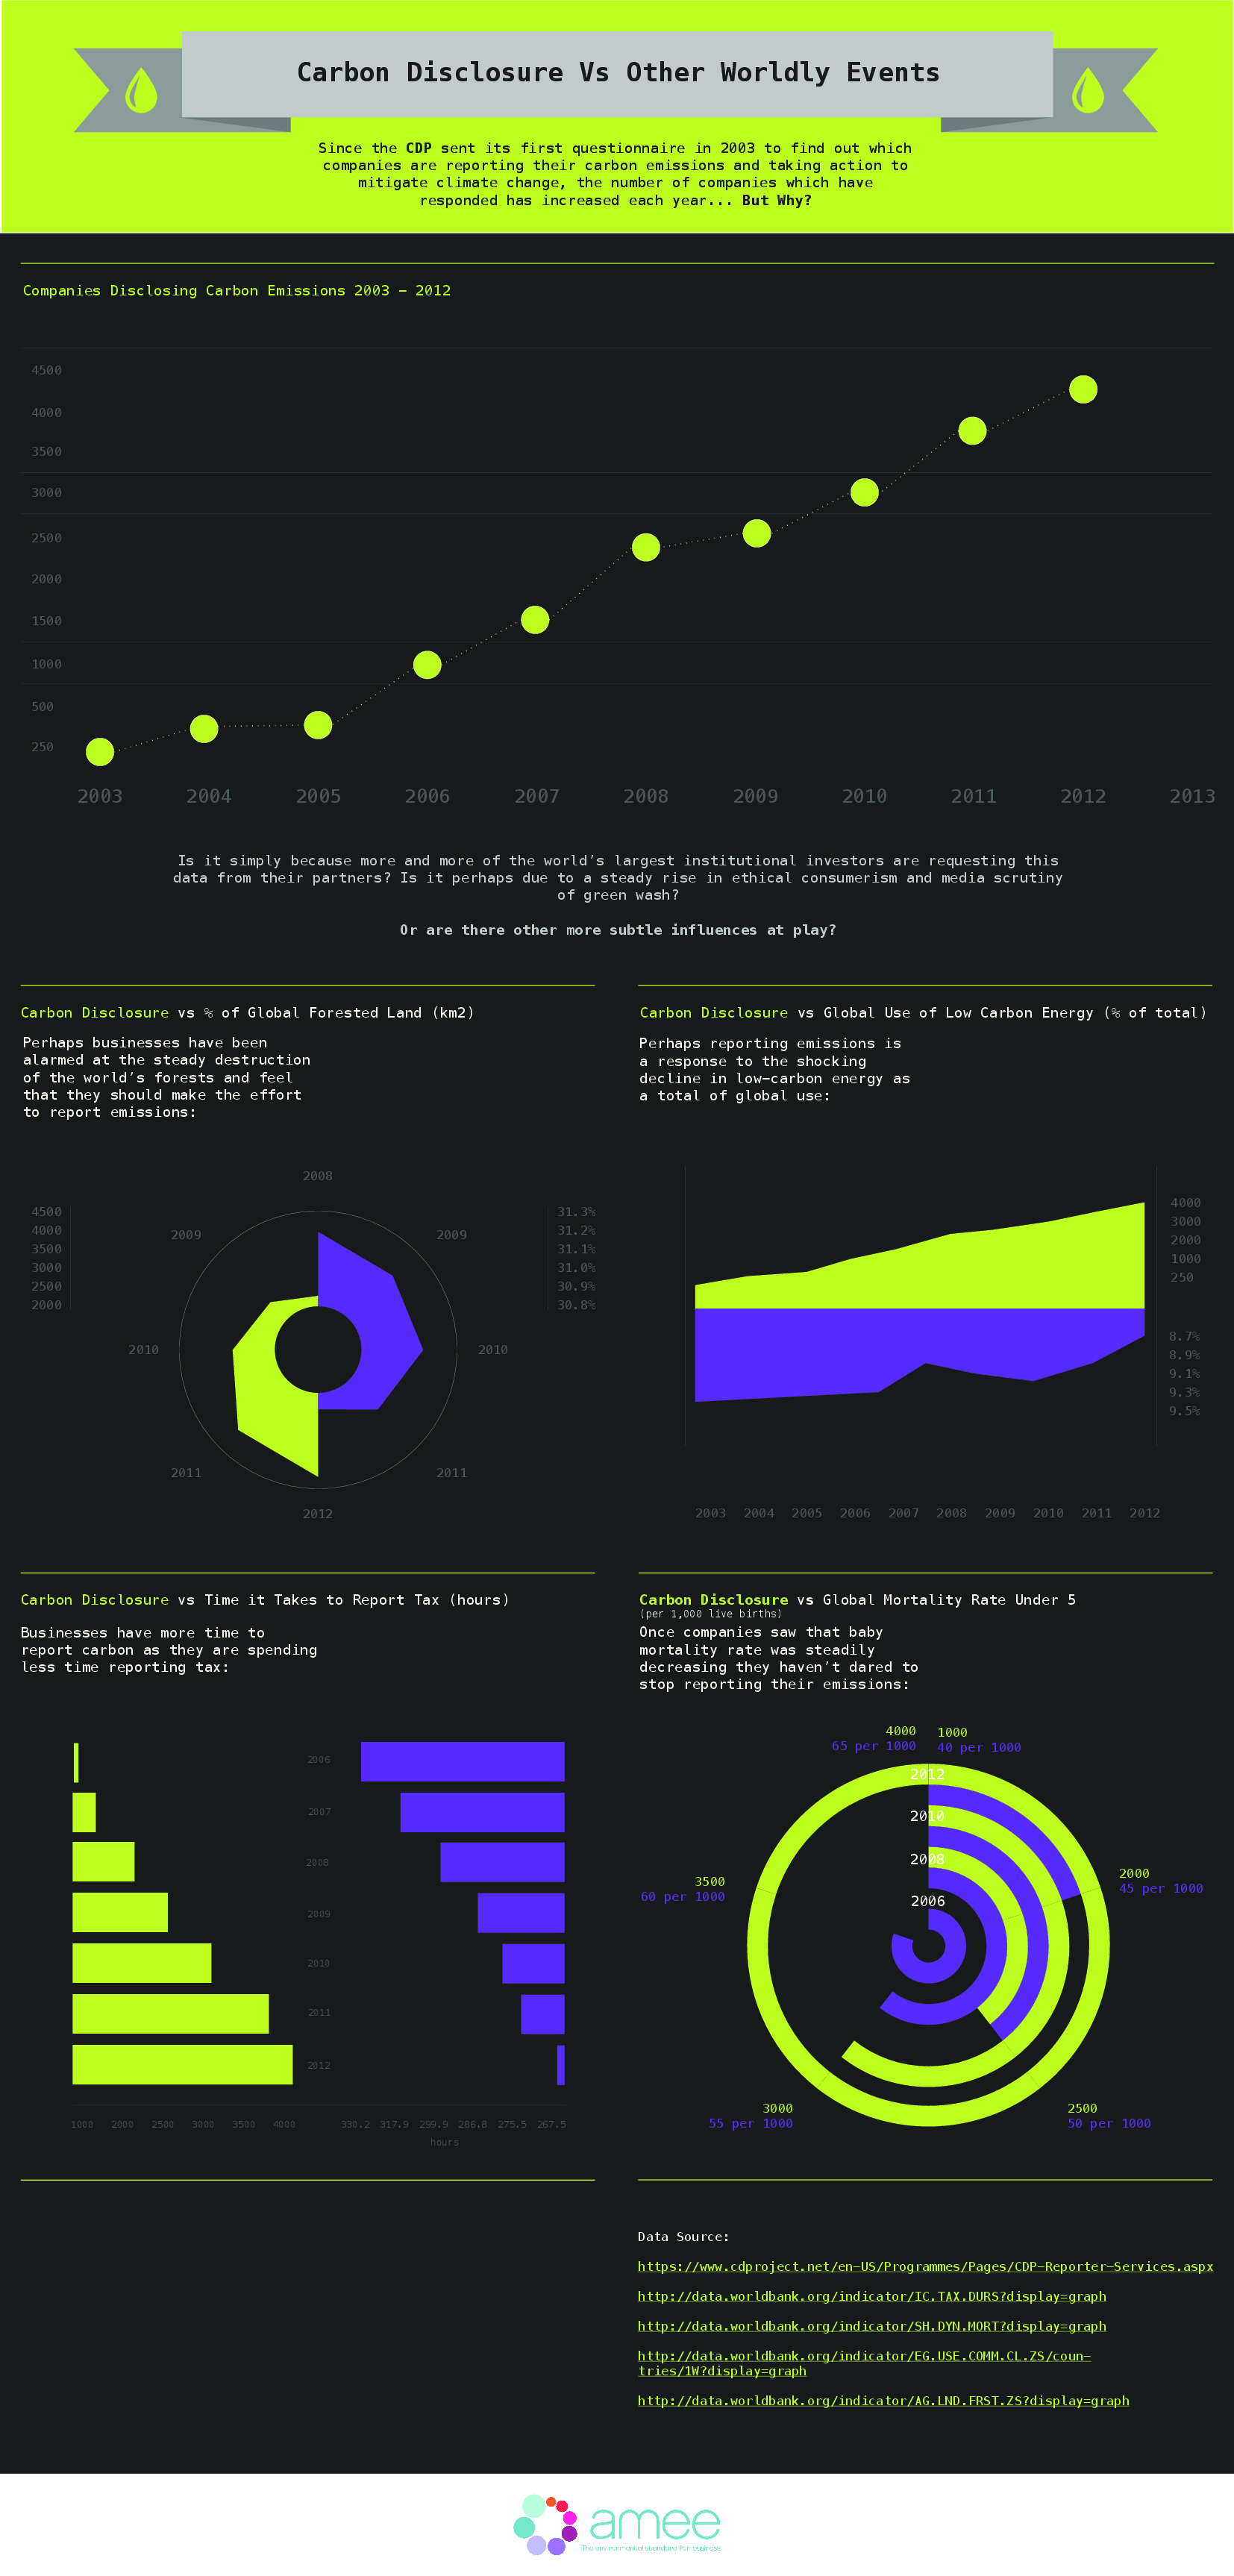 amee-infographic---carbon-disclosure-vs-other-worldly-events_5265173f52559